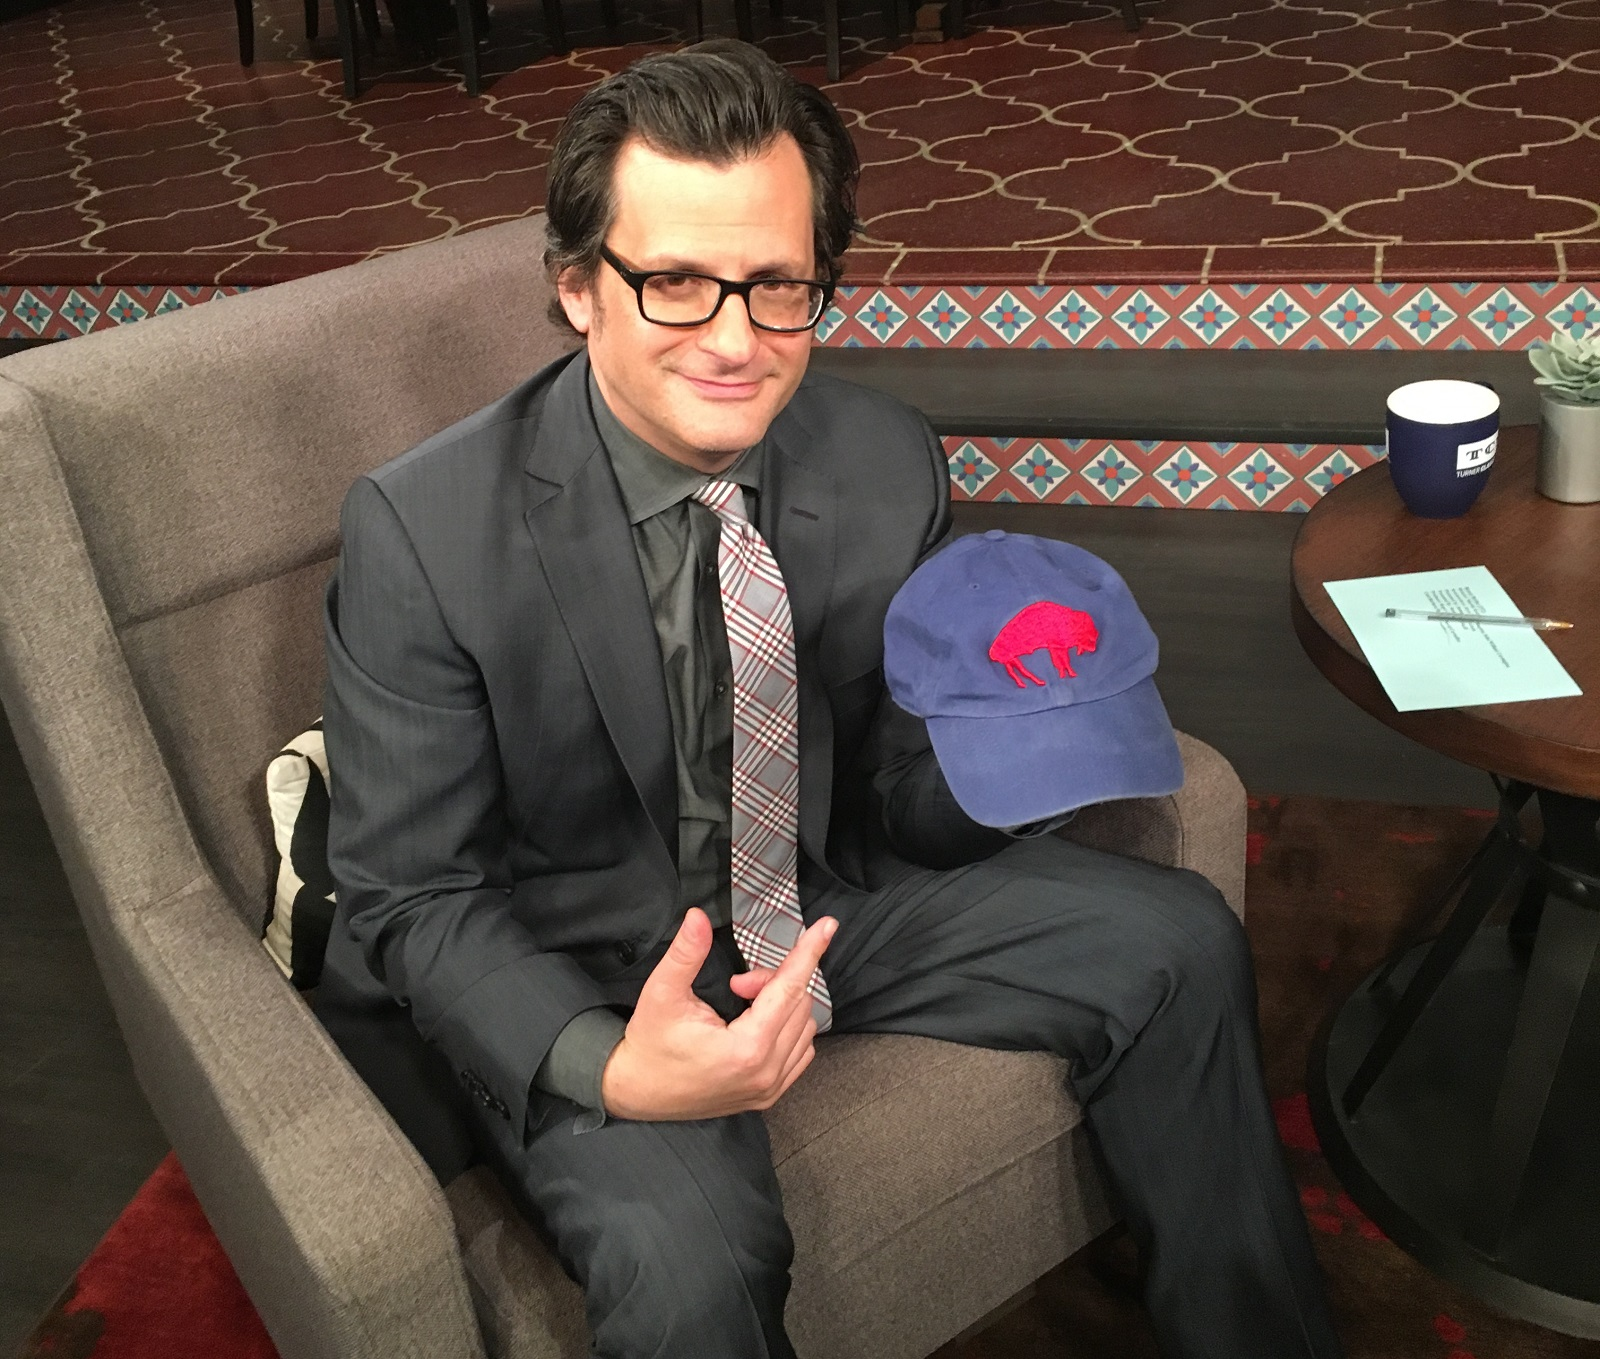 TCM host Ben Mankiewicz is a fan of classic movies - and the Buffalo Bills. (Courtesy TCM.)